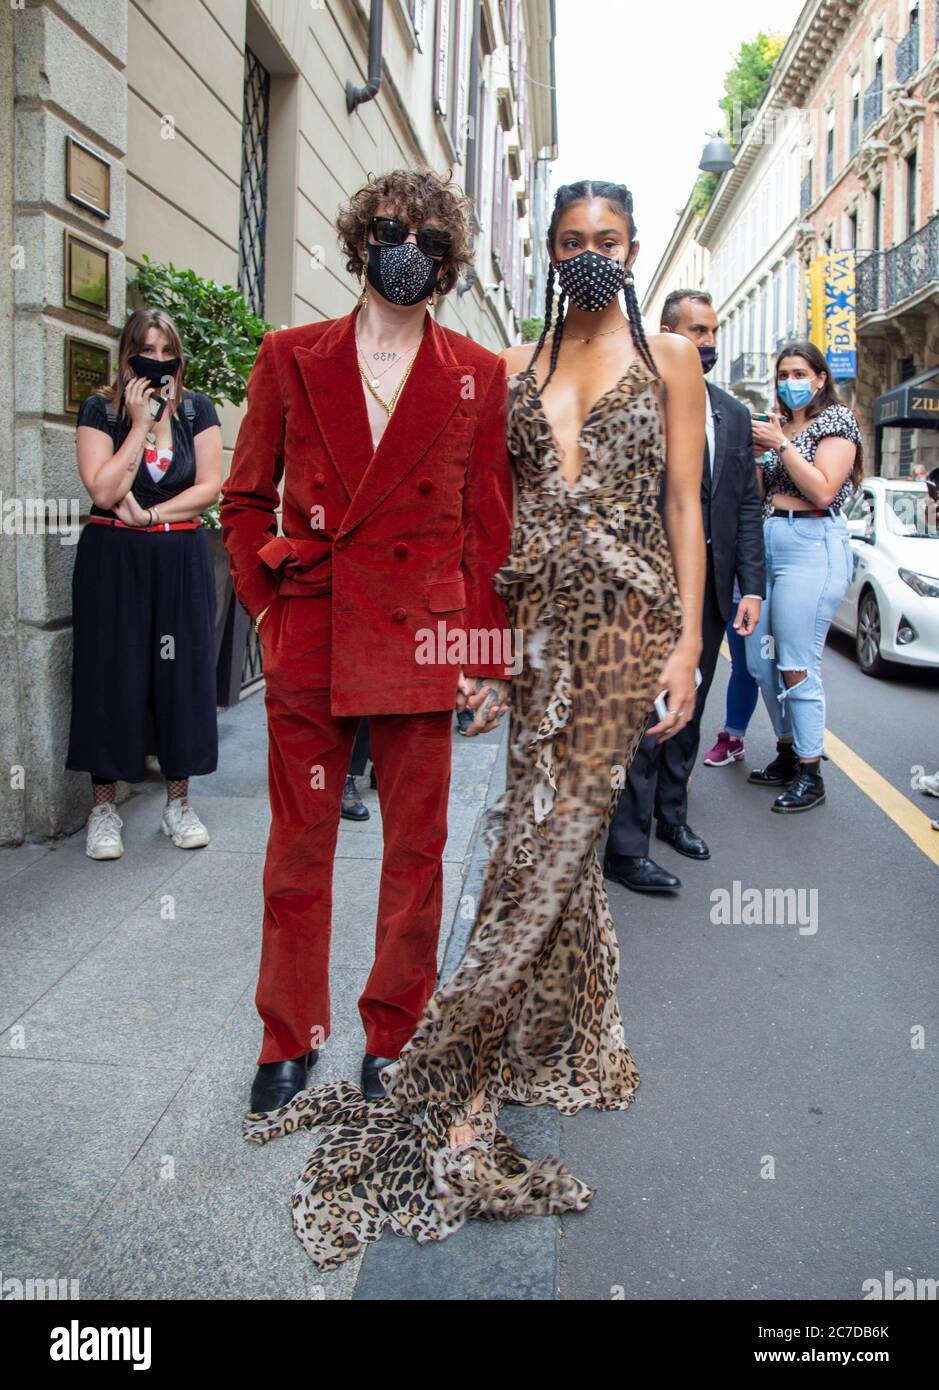 Singer Irama And His Fiancee Victoria Stella During Milan Digital Fashion Show 2020 At The Etro Fashion Show Photo By Franco Re Pacific Press Stock Photo Alamy